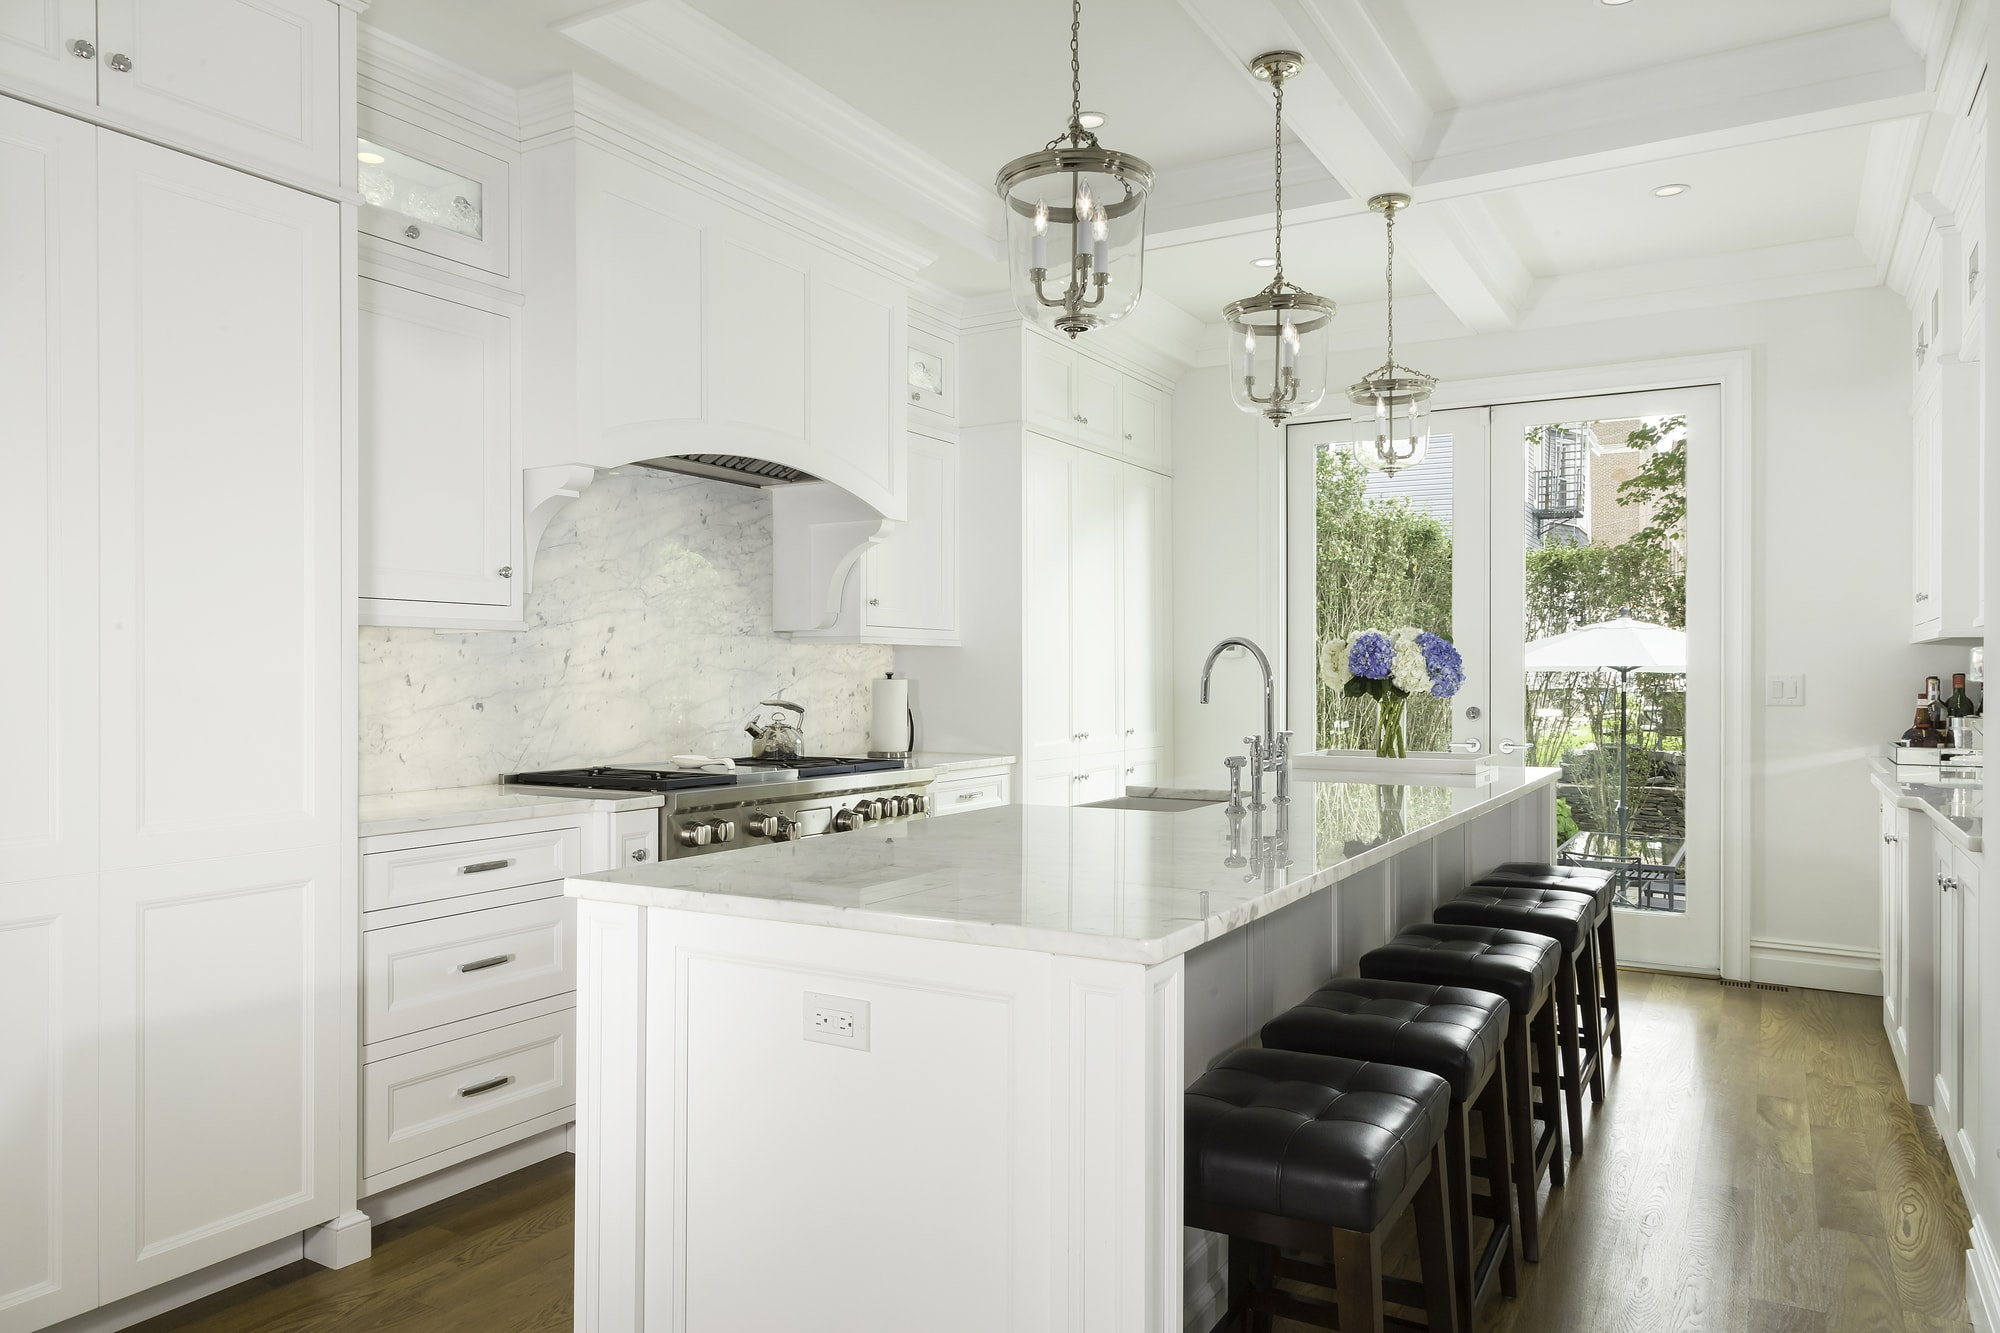 Transitional style kitchen with long and white kitchen island